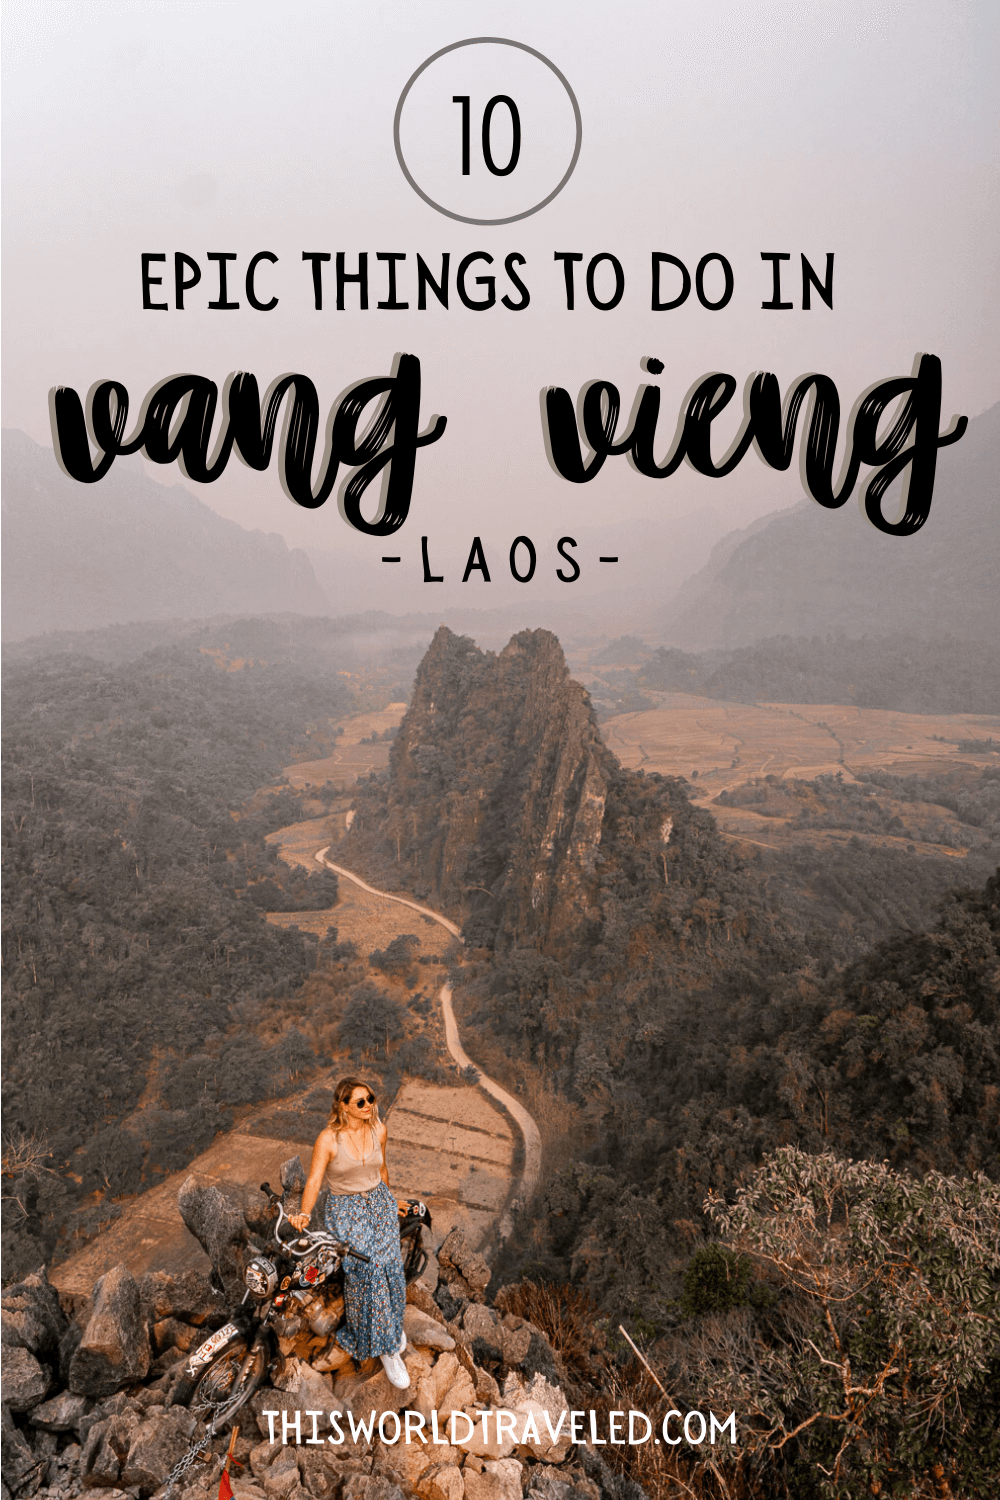 Nam Xay viewpoint in Vang Vieng Laos with lettering that says 10 Epic things to do in Vang Vieng, Laos | This World Traveled